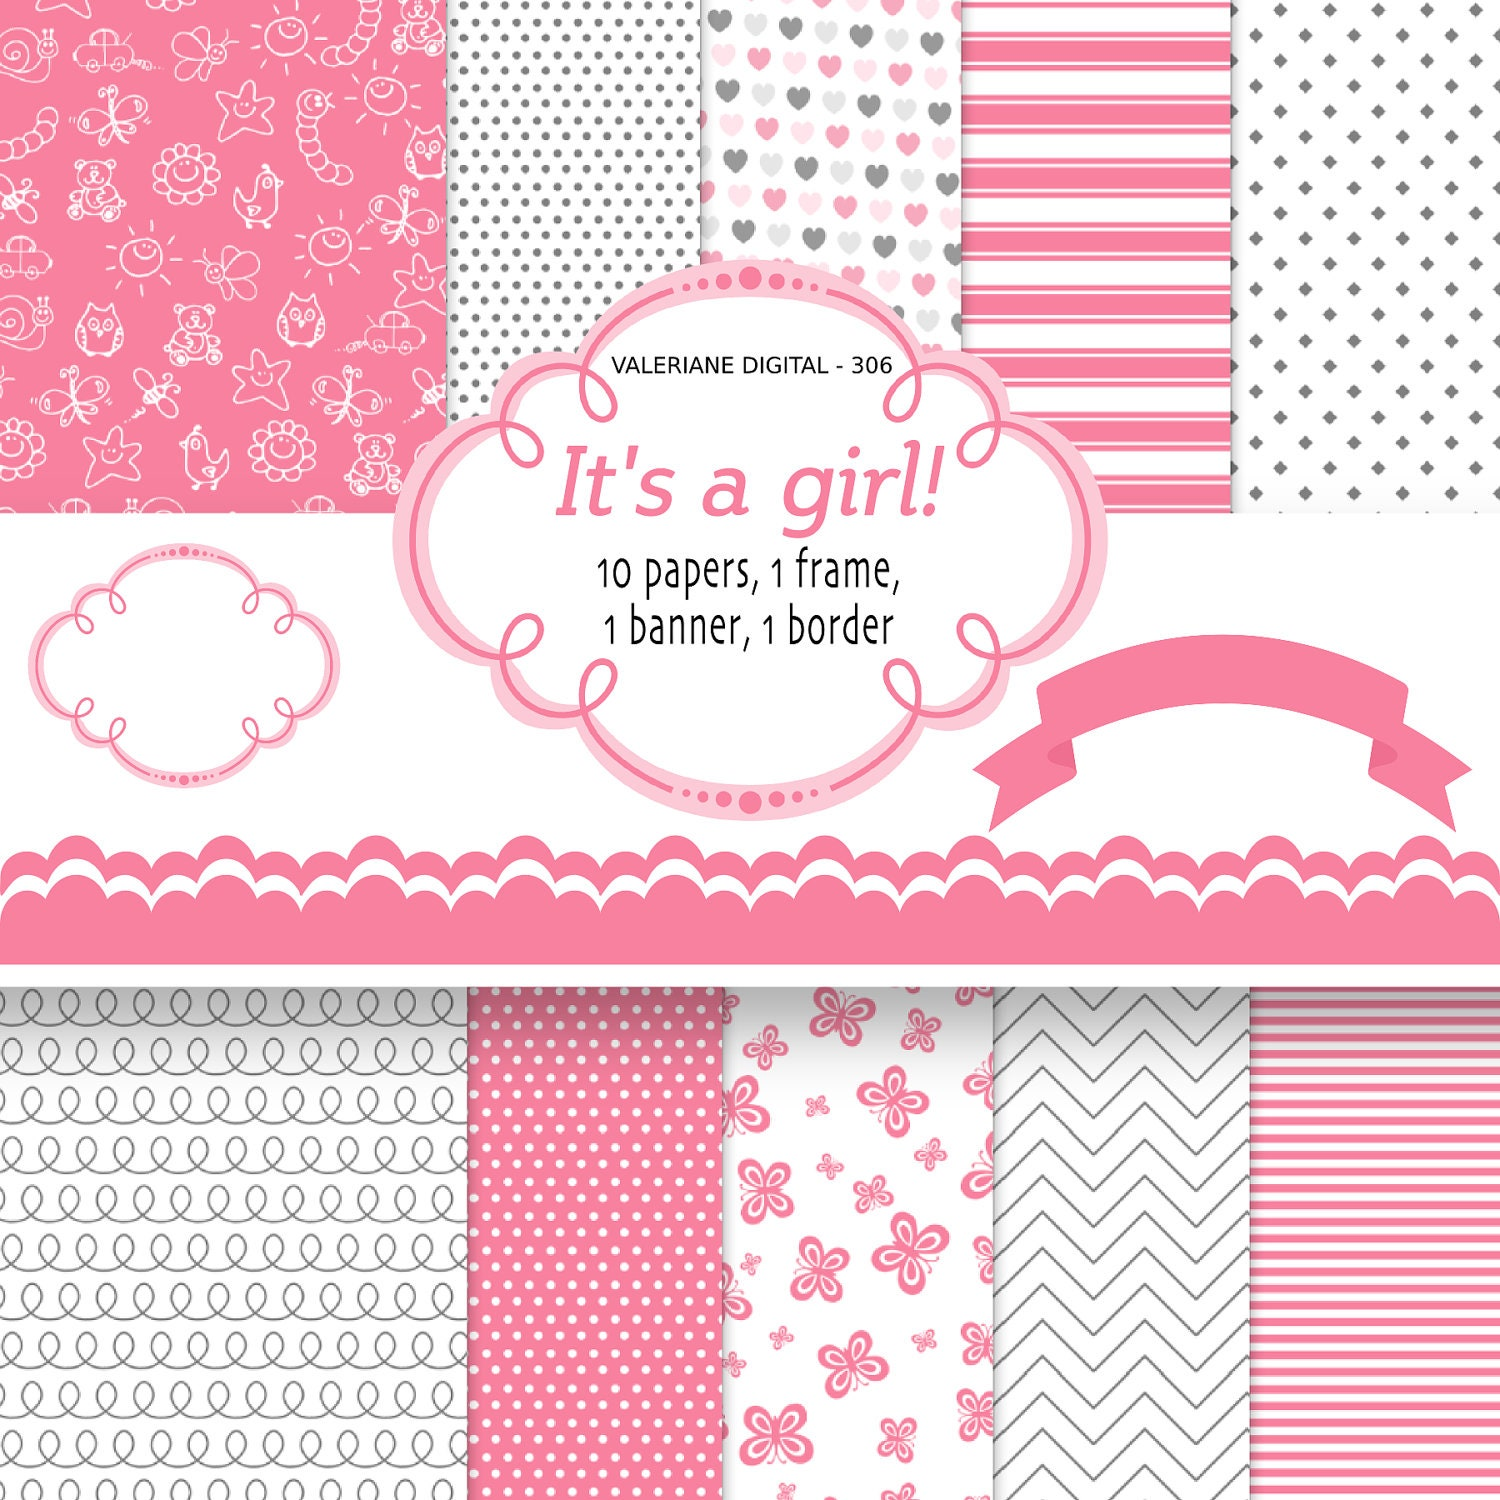 How to scrapbook for baby girl - Baby Girl Digital Paper Instant Download Pink Backgrounds For Scrapbooking Invitation Pink Digital Paper Pack 306